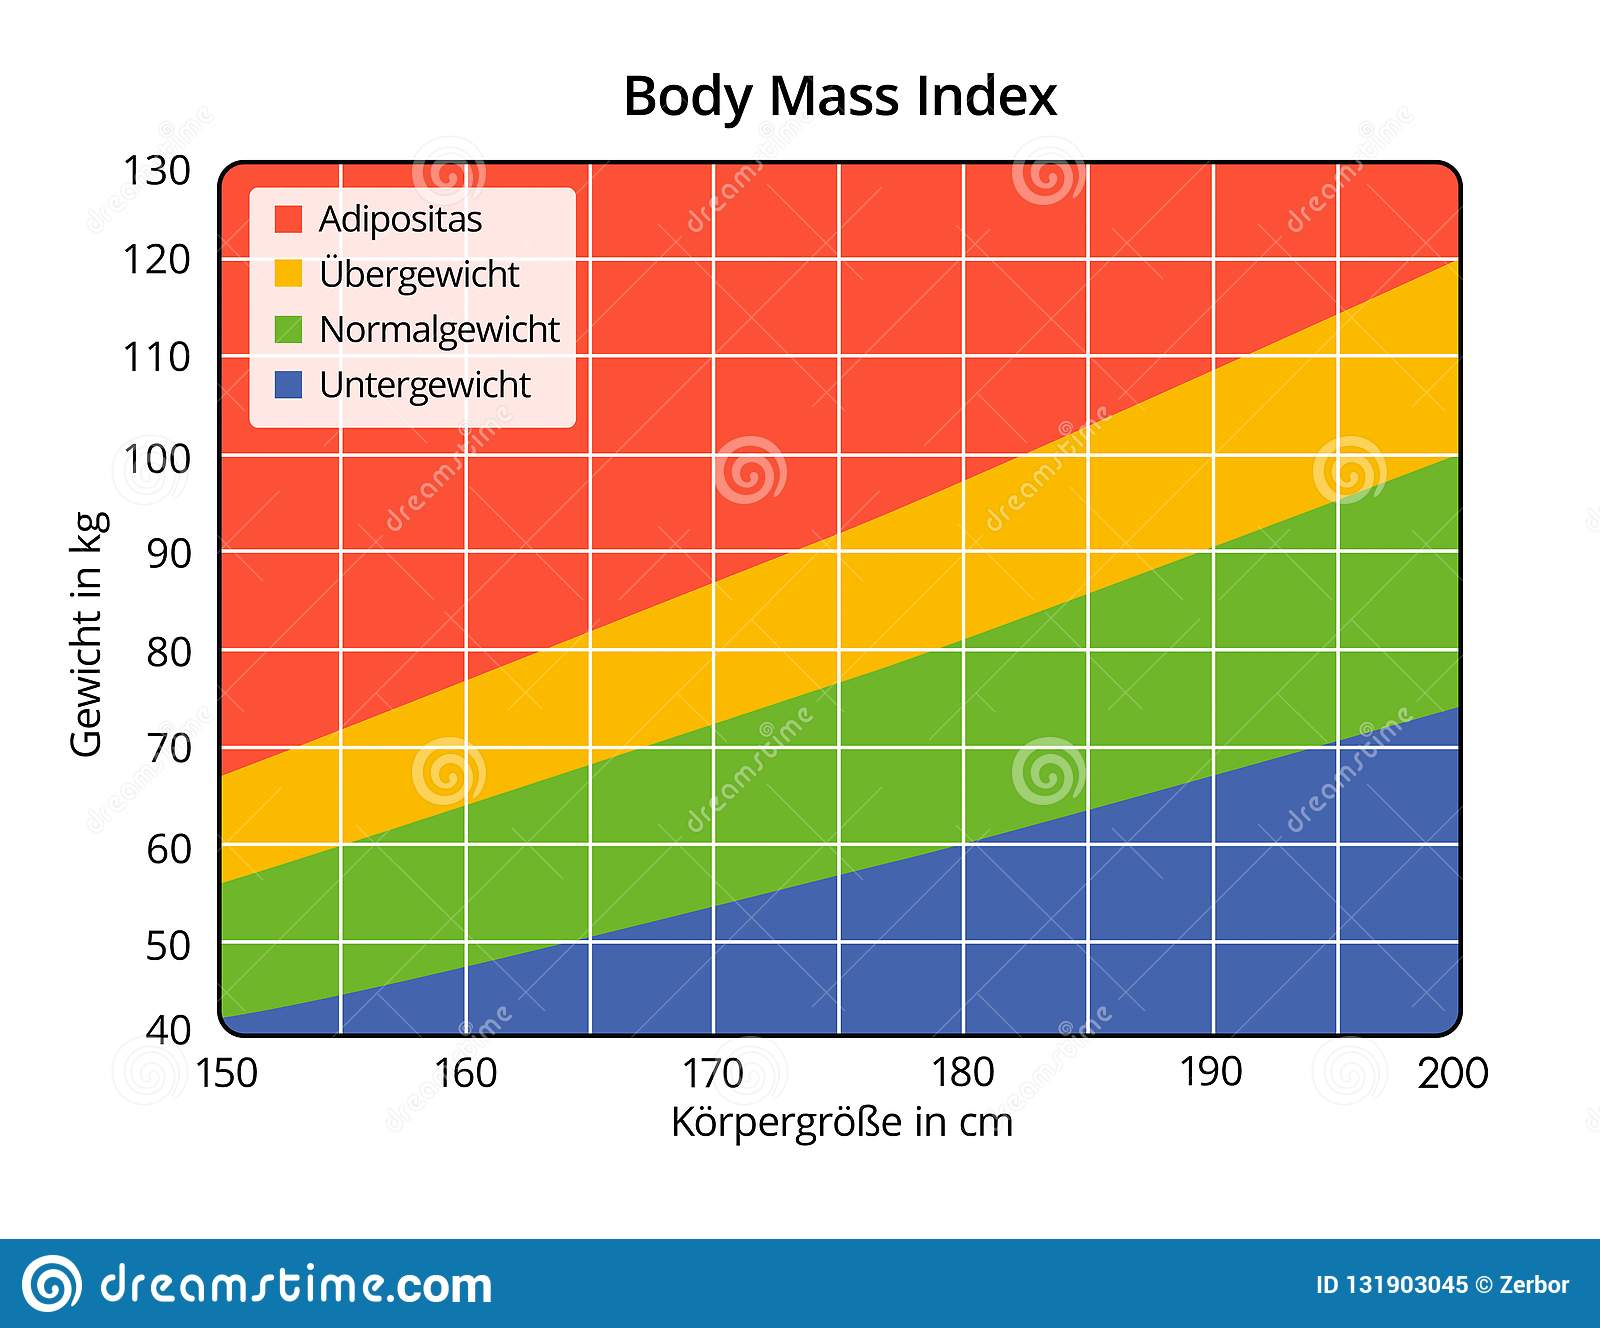 Body Mass Index in cm and kg German labeling